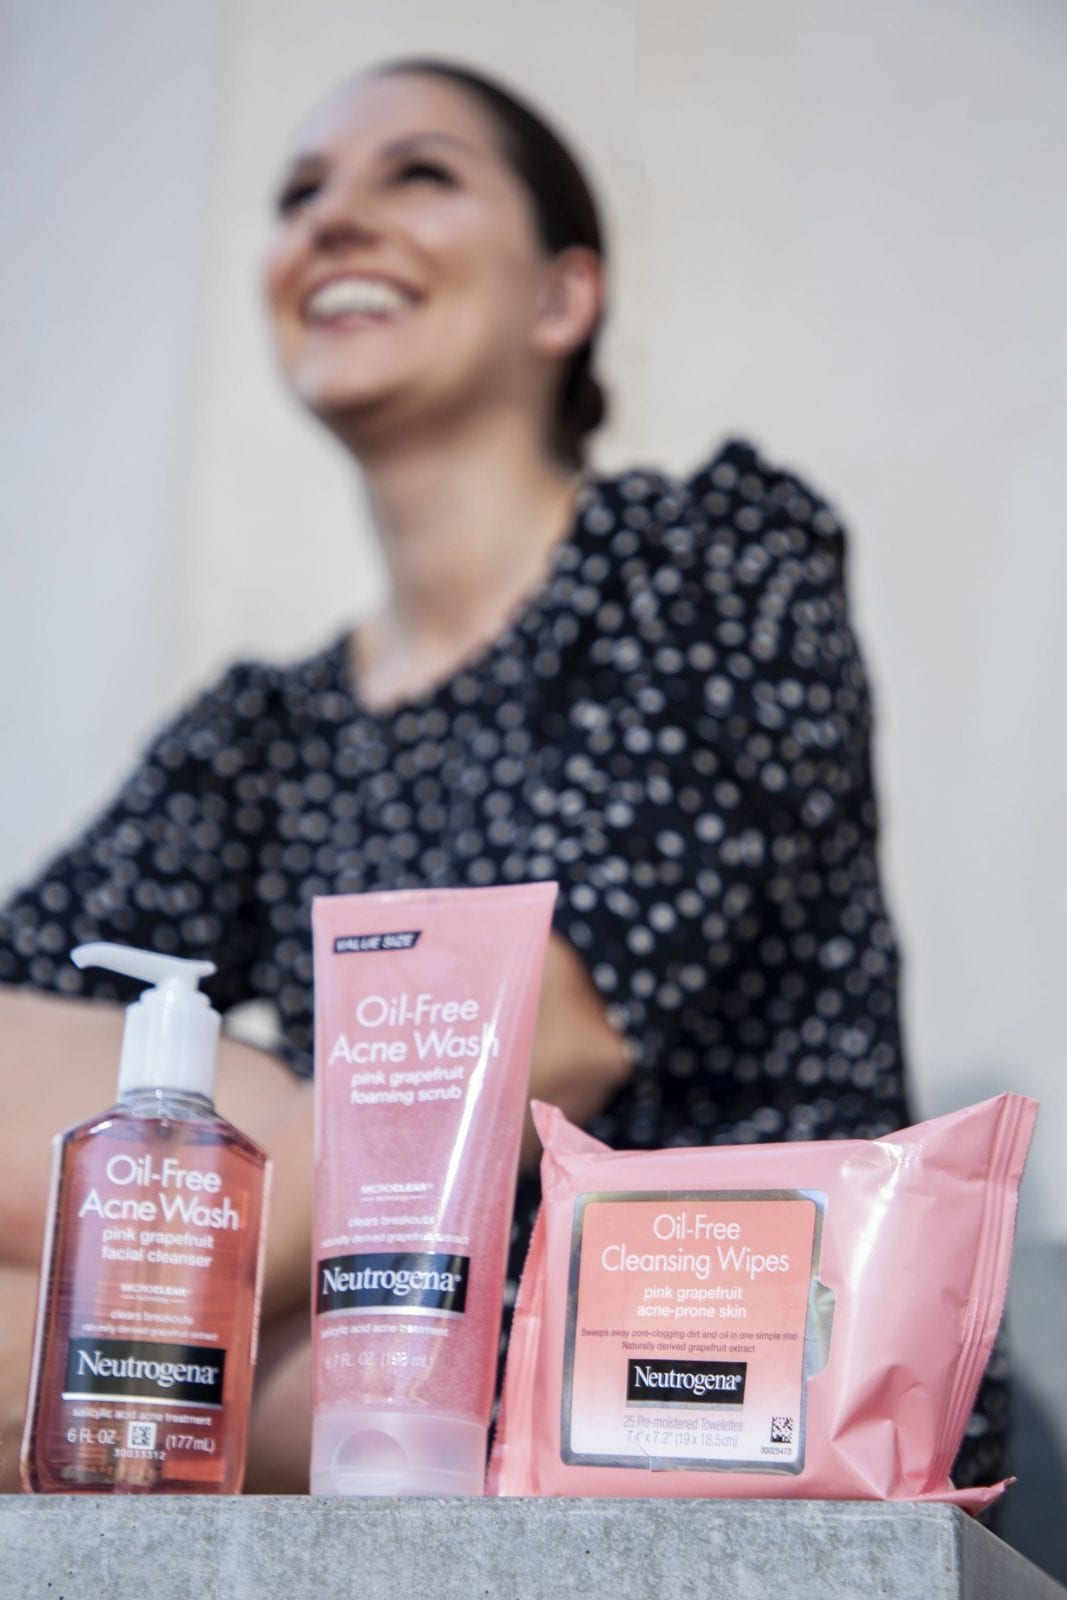 This is photo of me in a black polka dot dress with the Neutrogena Grapefruit Collection in front of me.